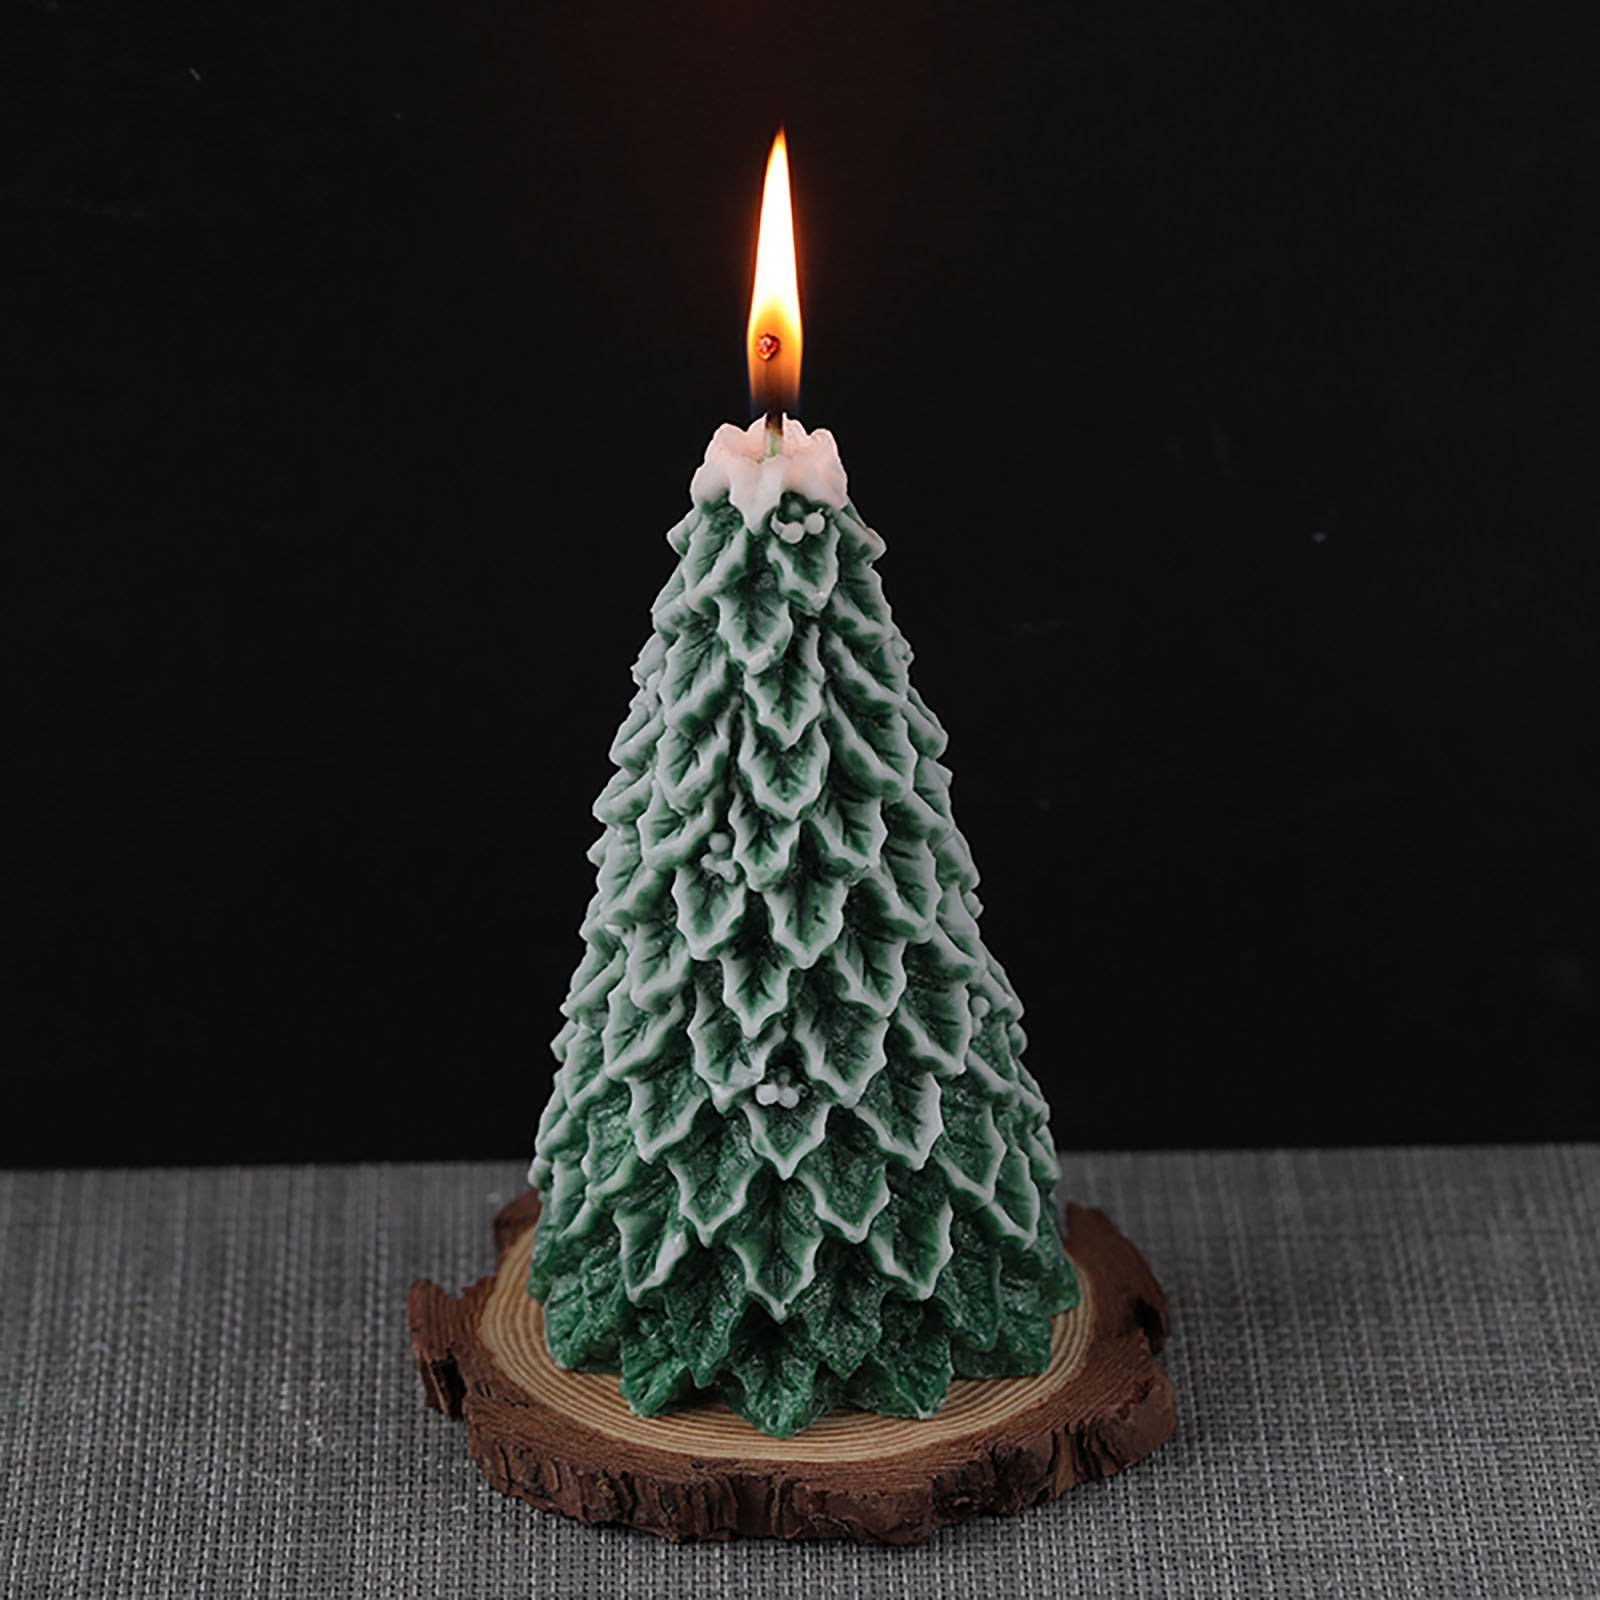 3D Candle Molds Pillar Silicone Soap Mold Christmas Tree DIY Handmade Wax Moulds